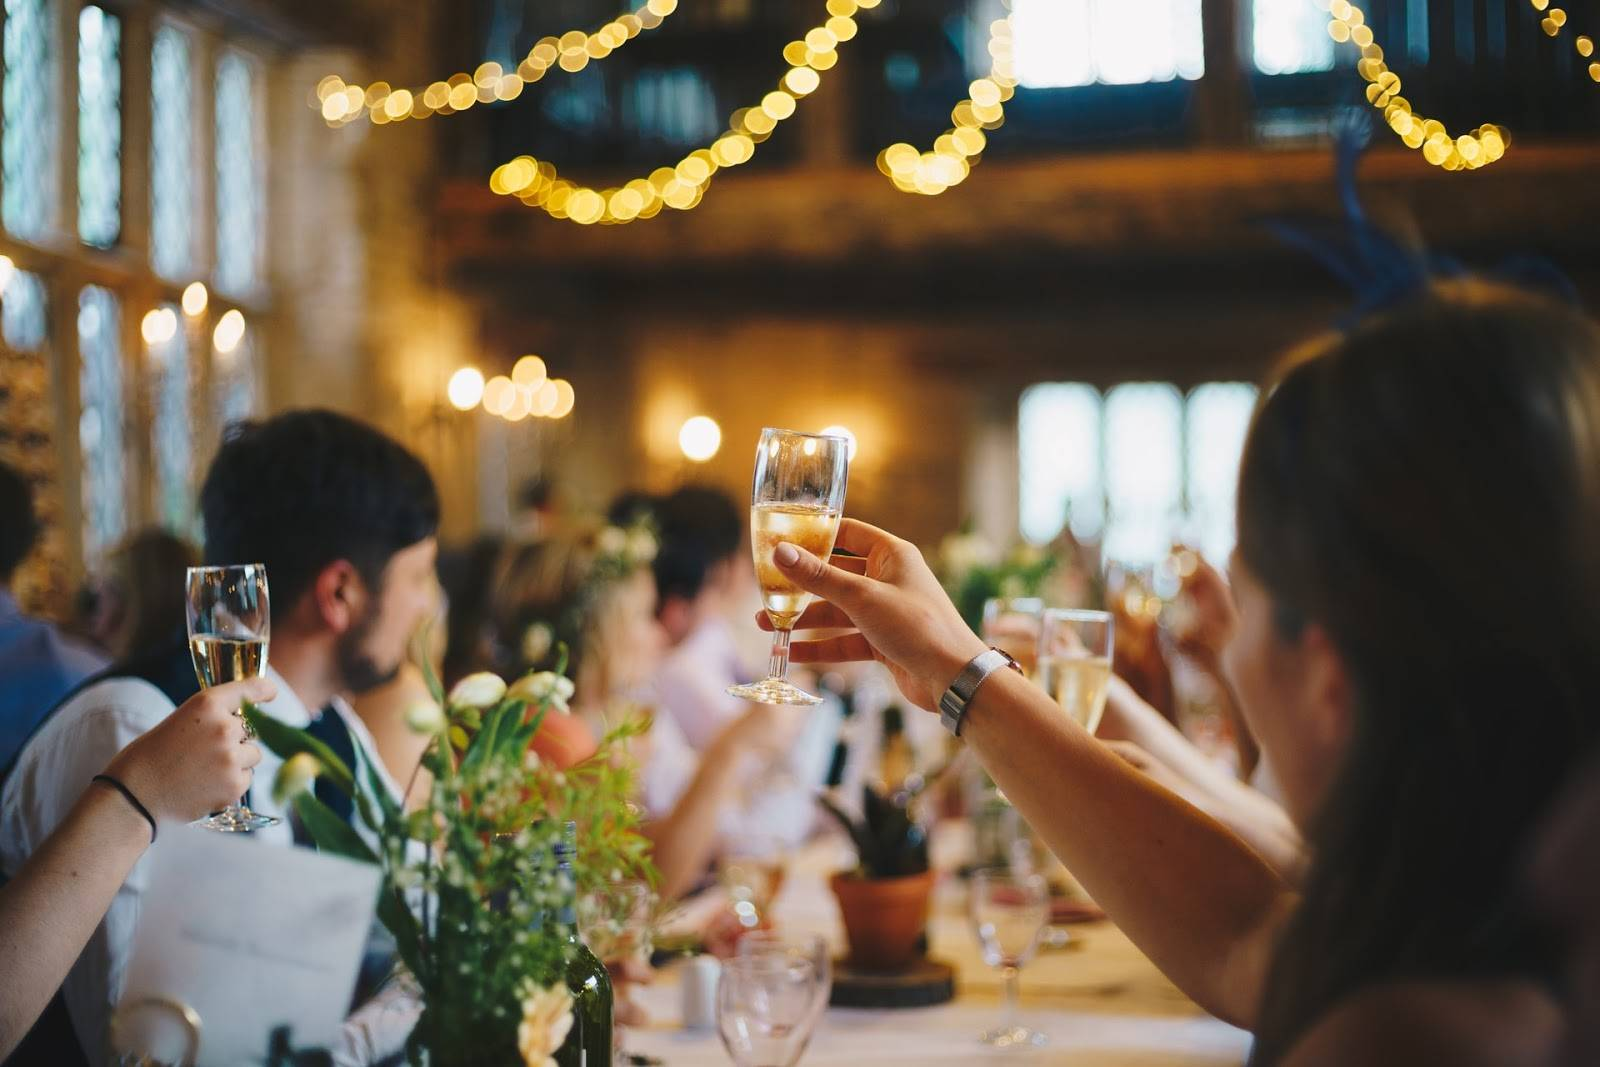 Tips for Scaling Down Your Upcoming Wedding